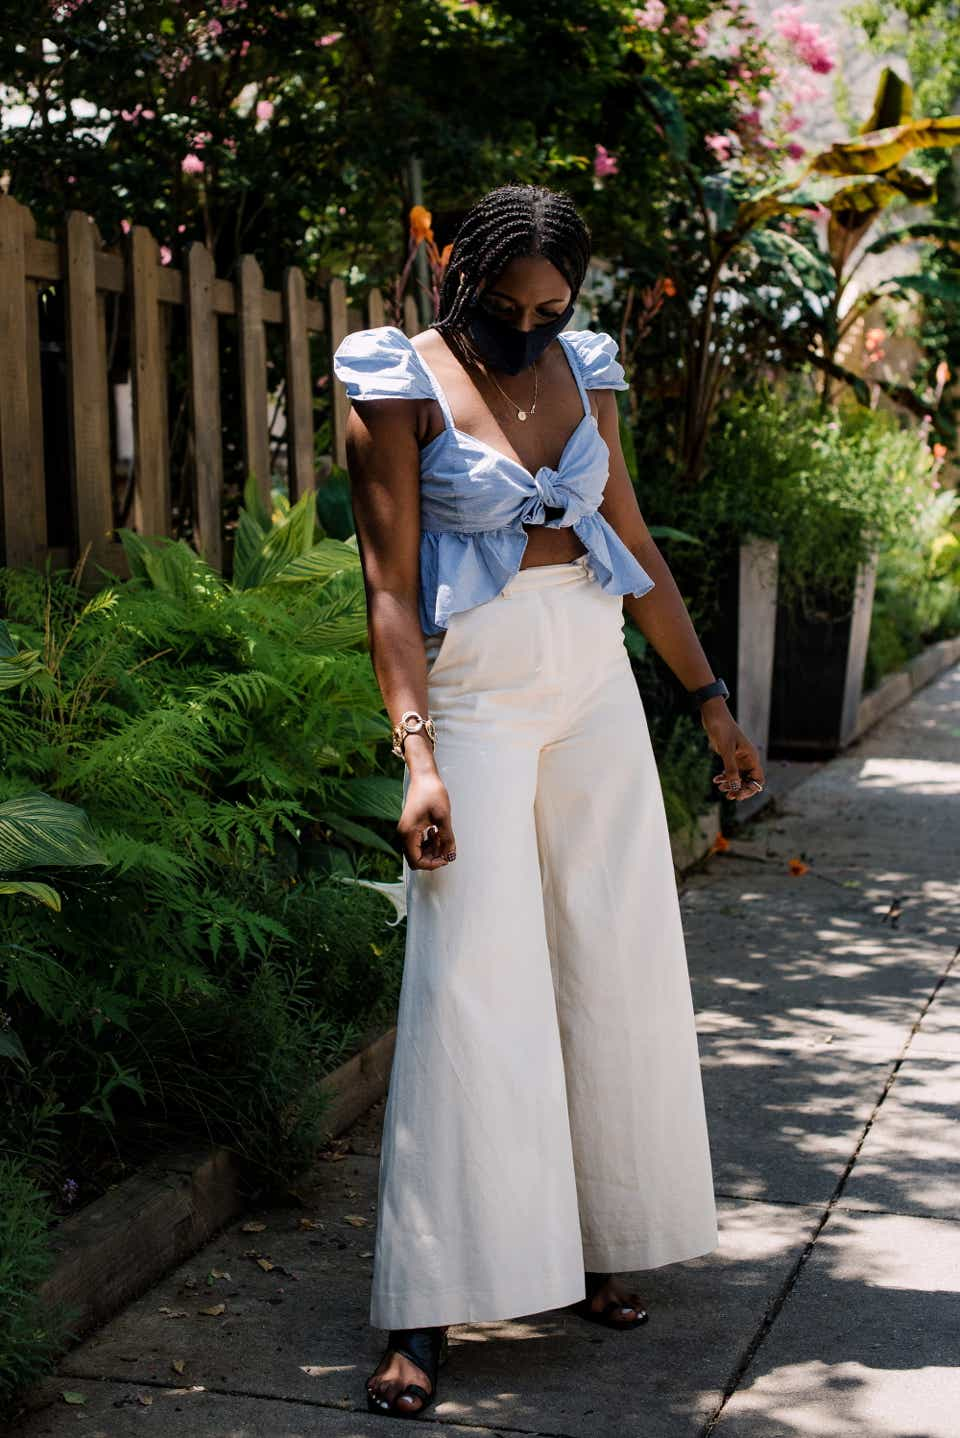 Remul is posing on the sidewalk in a black mask, a light blue, ruffled tank top, and wide-leg white pants.